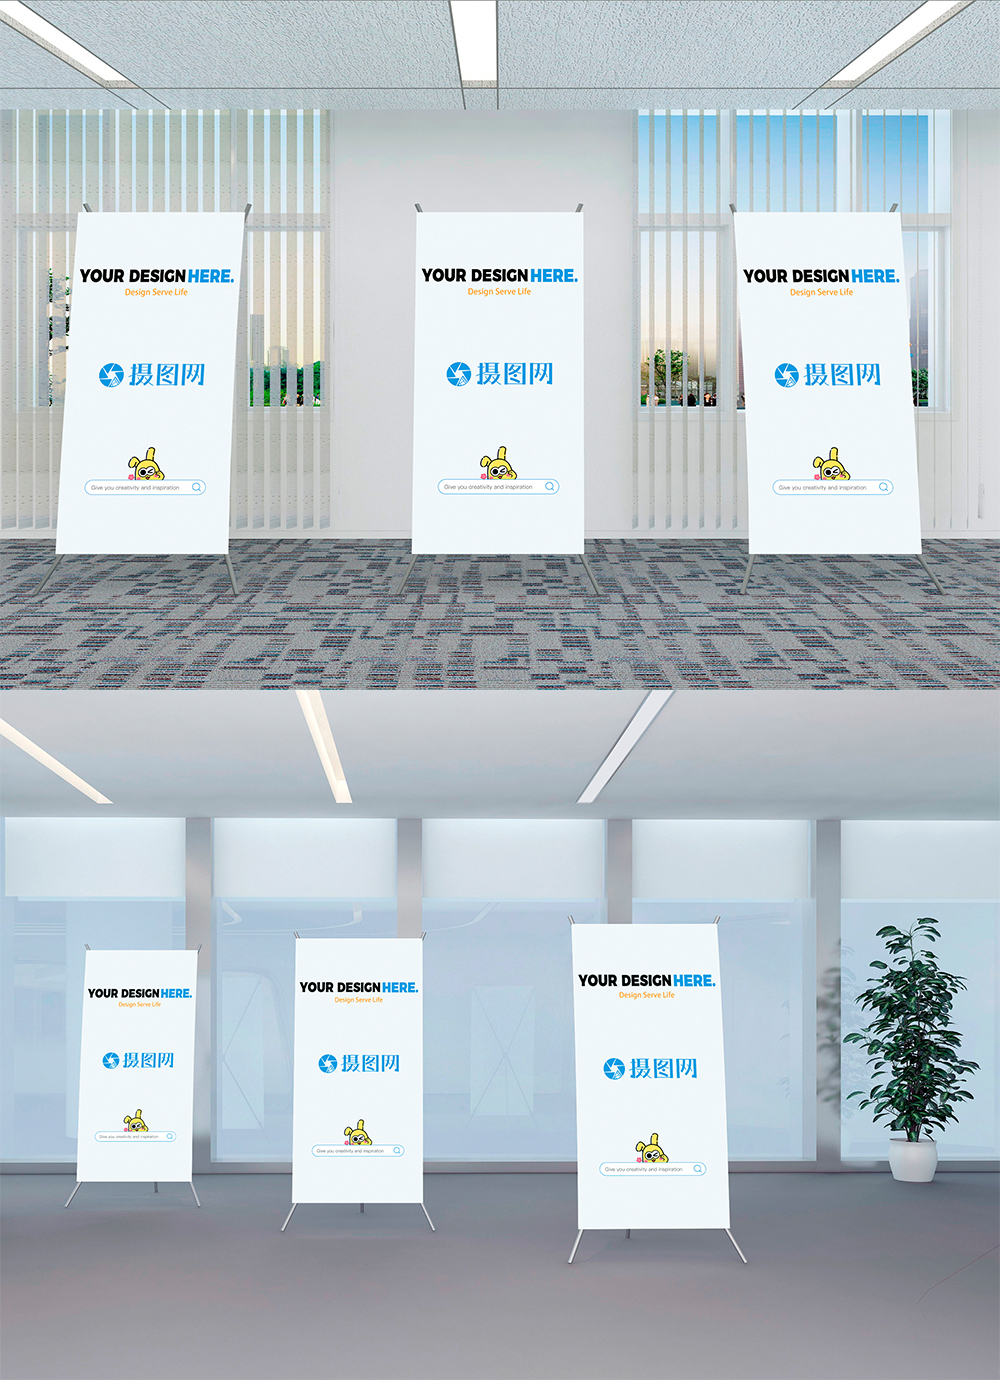 Exhibition Stand Design Mockup Free : Grand exhibition stand display mock up stock vector royalty free